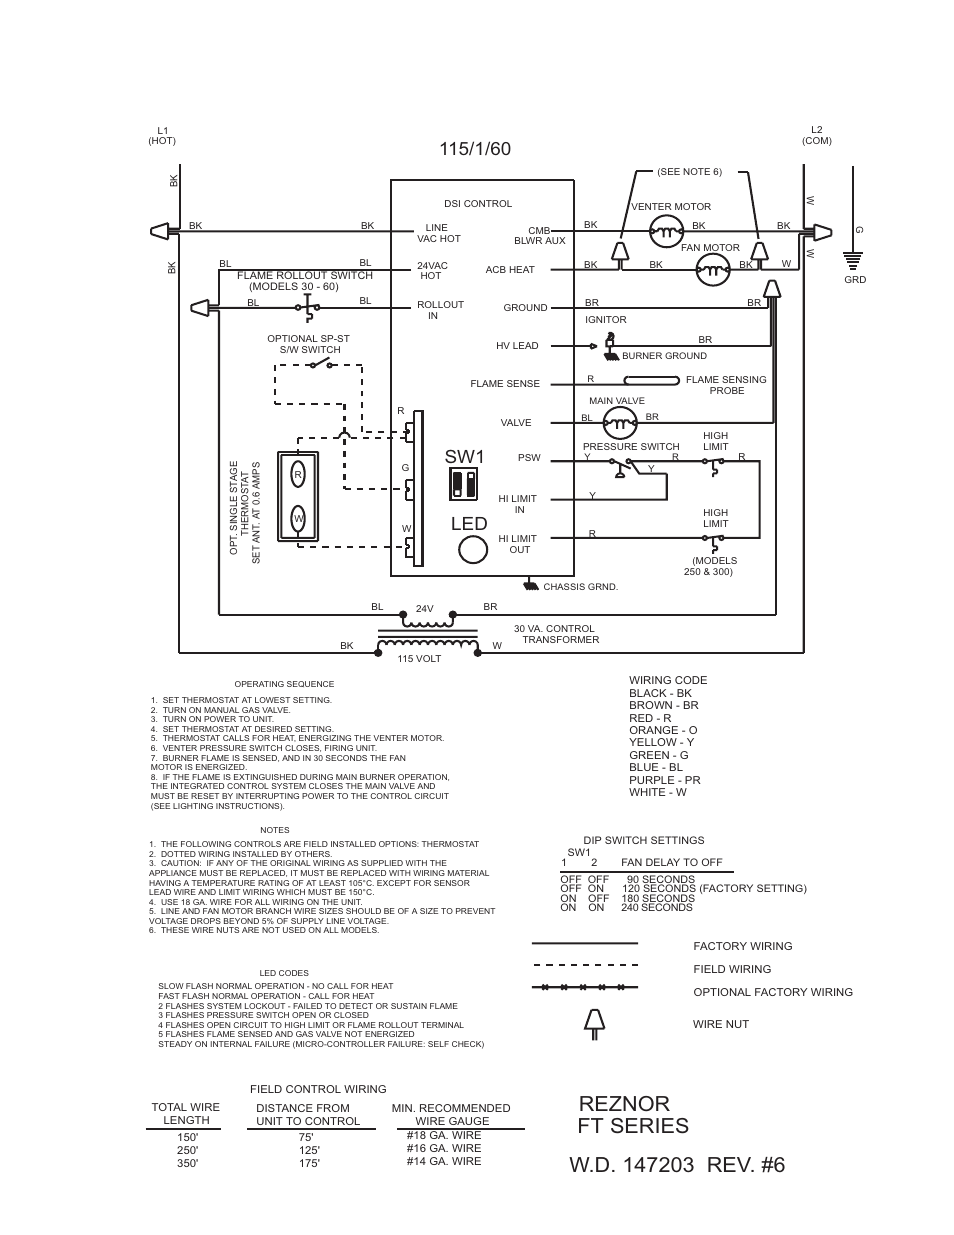 reznor ft unit installation manual page13?resized665%2C861 reznor heater wiring schematic efcaviation com dayton gas unit heater wiring diagram at gsmx.co